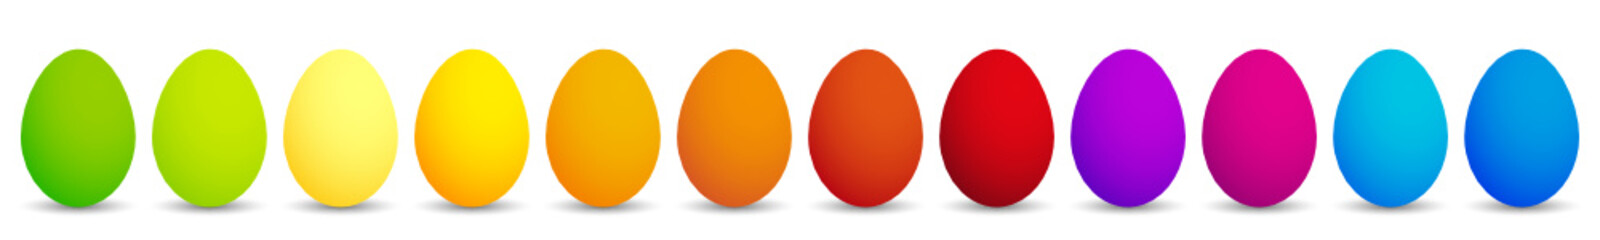 12 colourful easter eggs